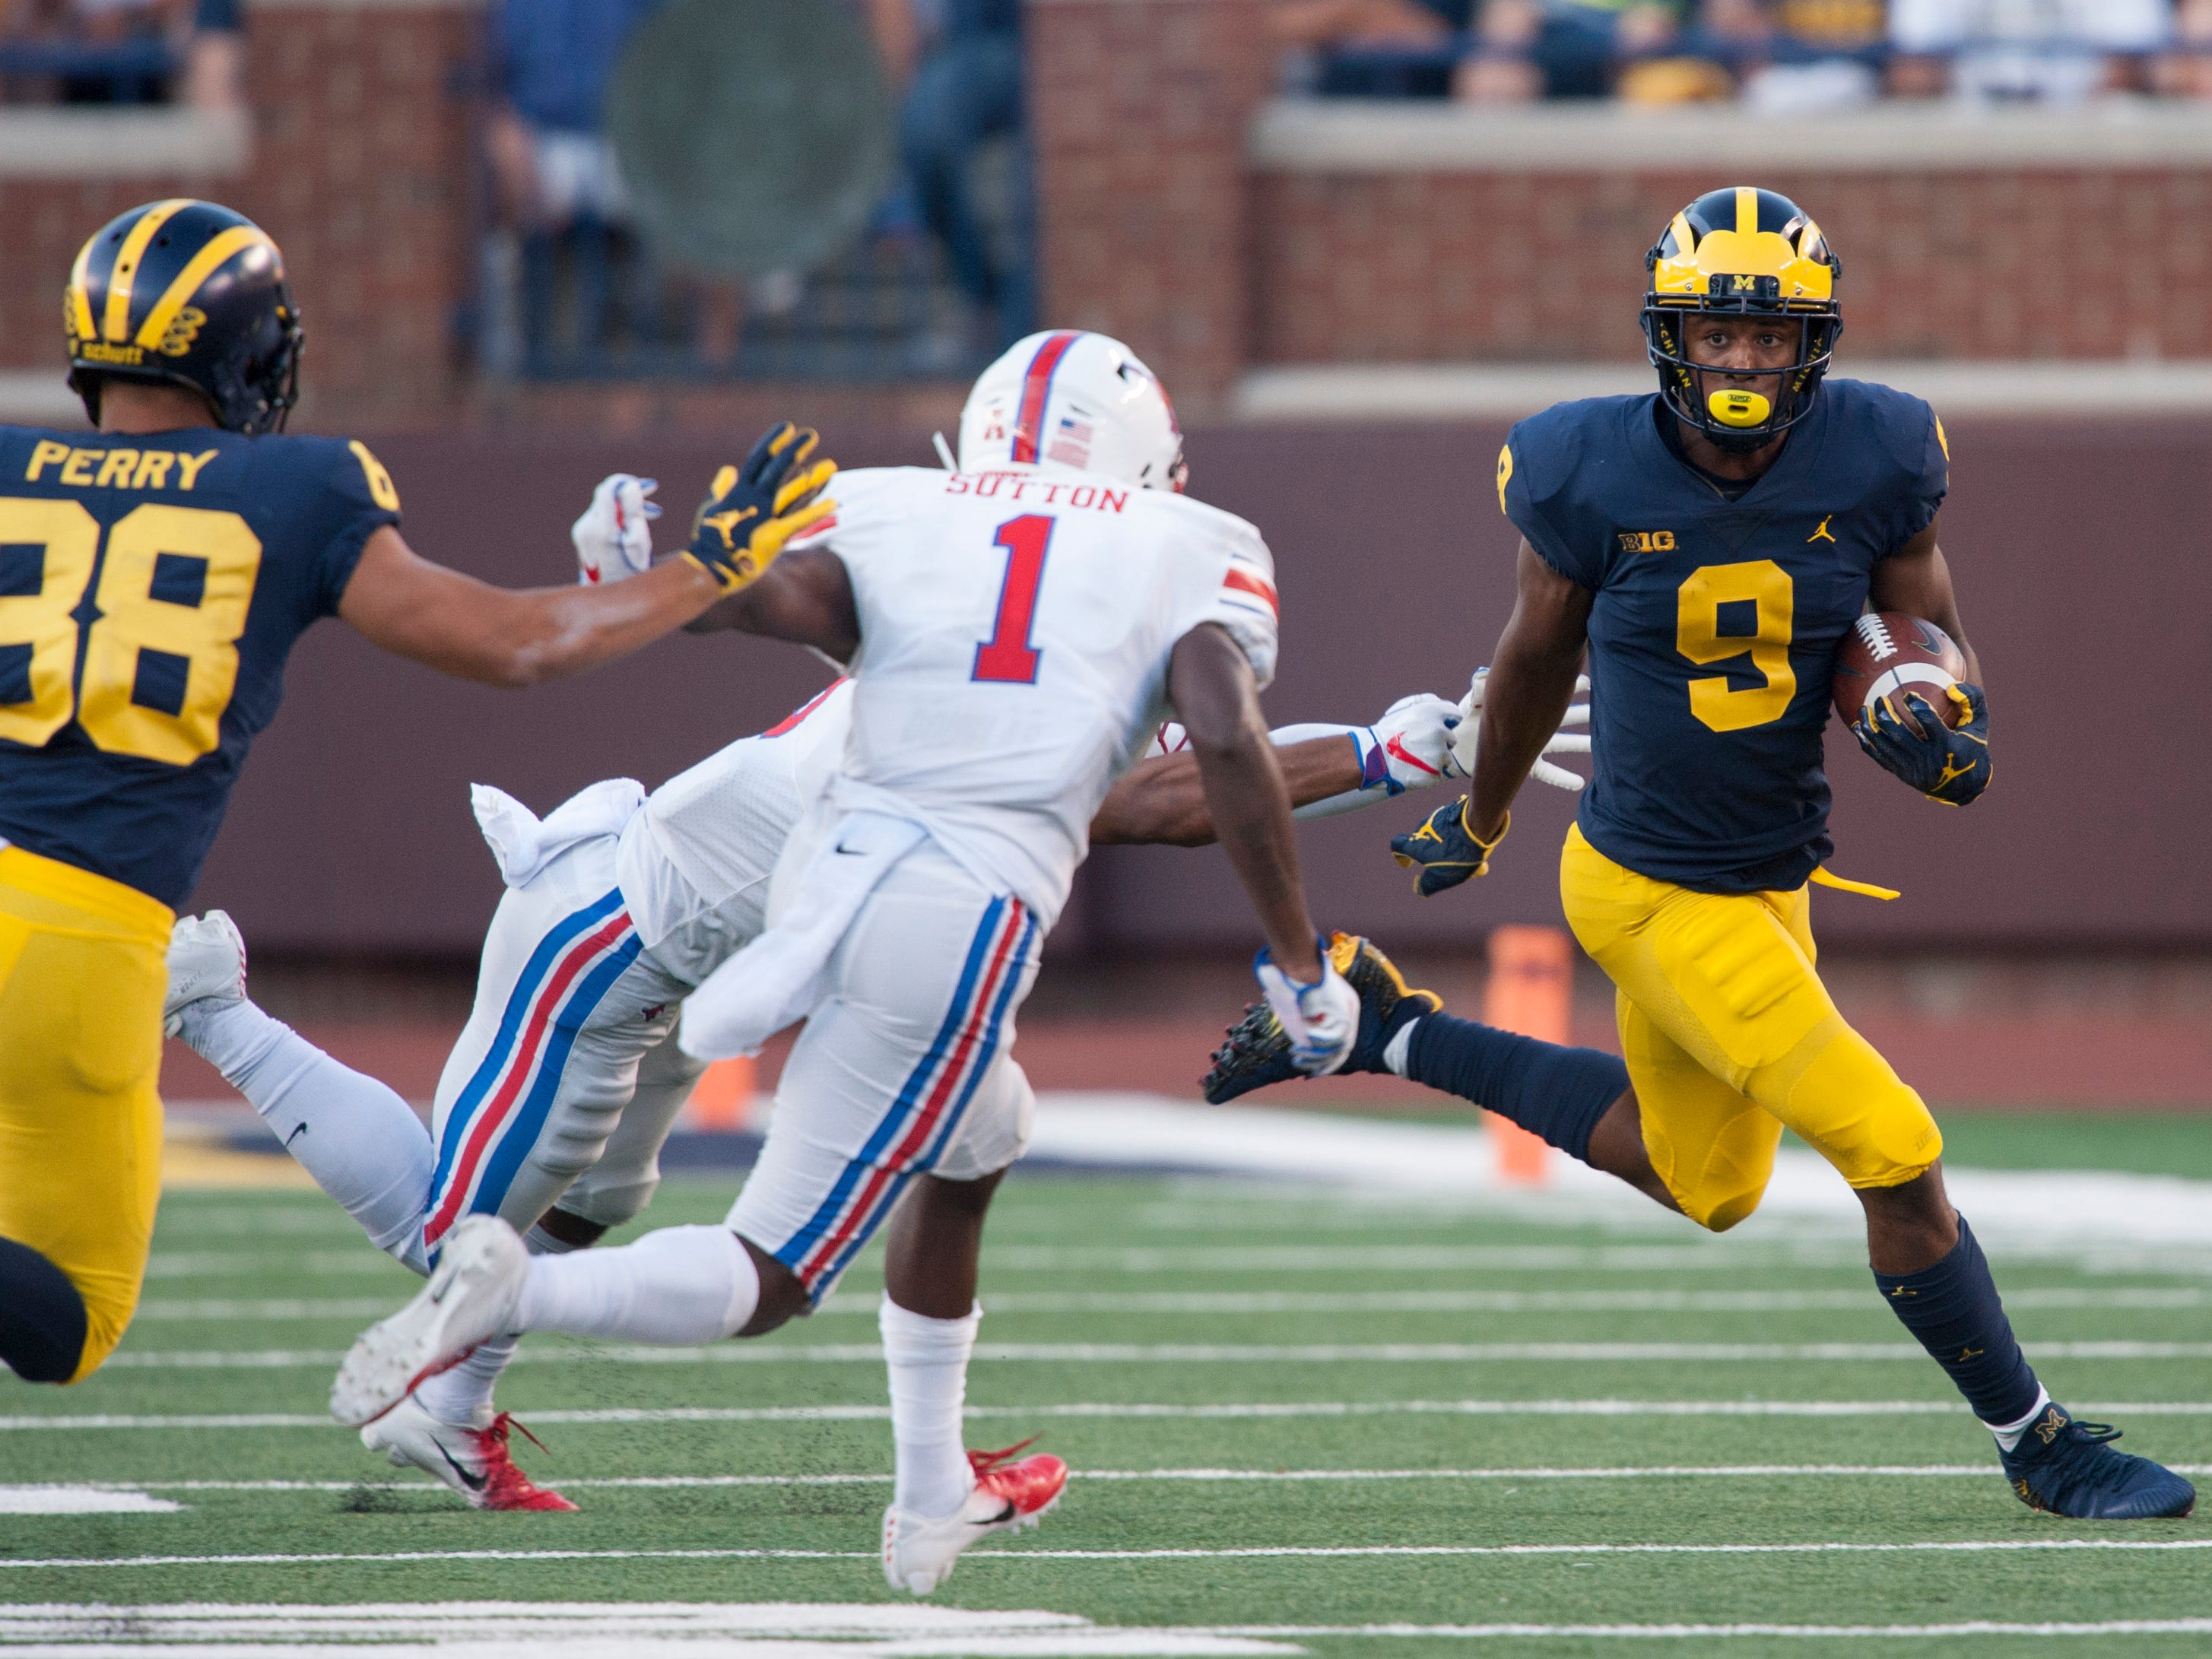 Michigan wide receiver Donovan Peoples-Jones gains some yardage on a sweep play in the second half. DPJ caught four passes for 90 yards and three touchdowns in the game as the Wolverines defeated the Southern Methodist University Mustangs 45-20 at Michigan Stadium in Ann Arbor on Saturday, September 15, 2018.